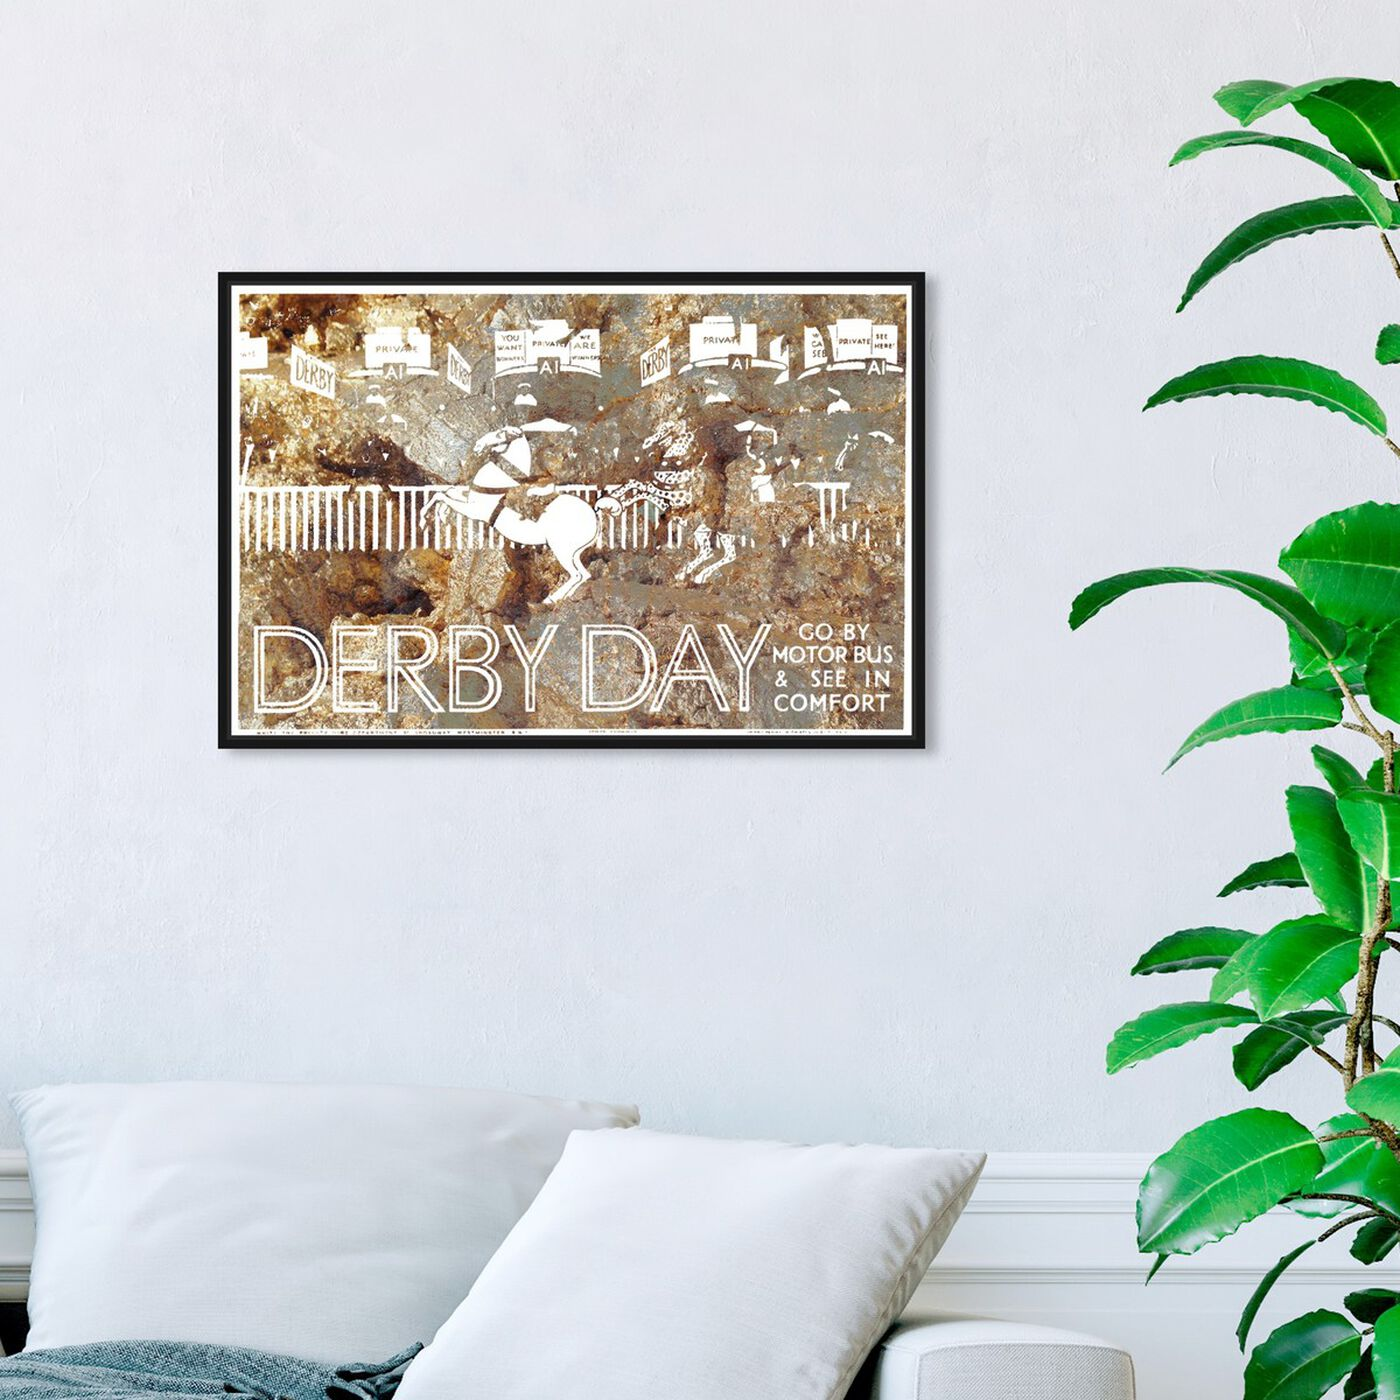 Hanging view of Come See The Derby featuring sports and teams and equestrian art.